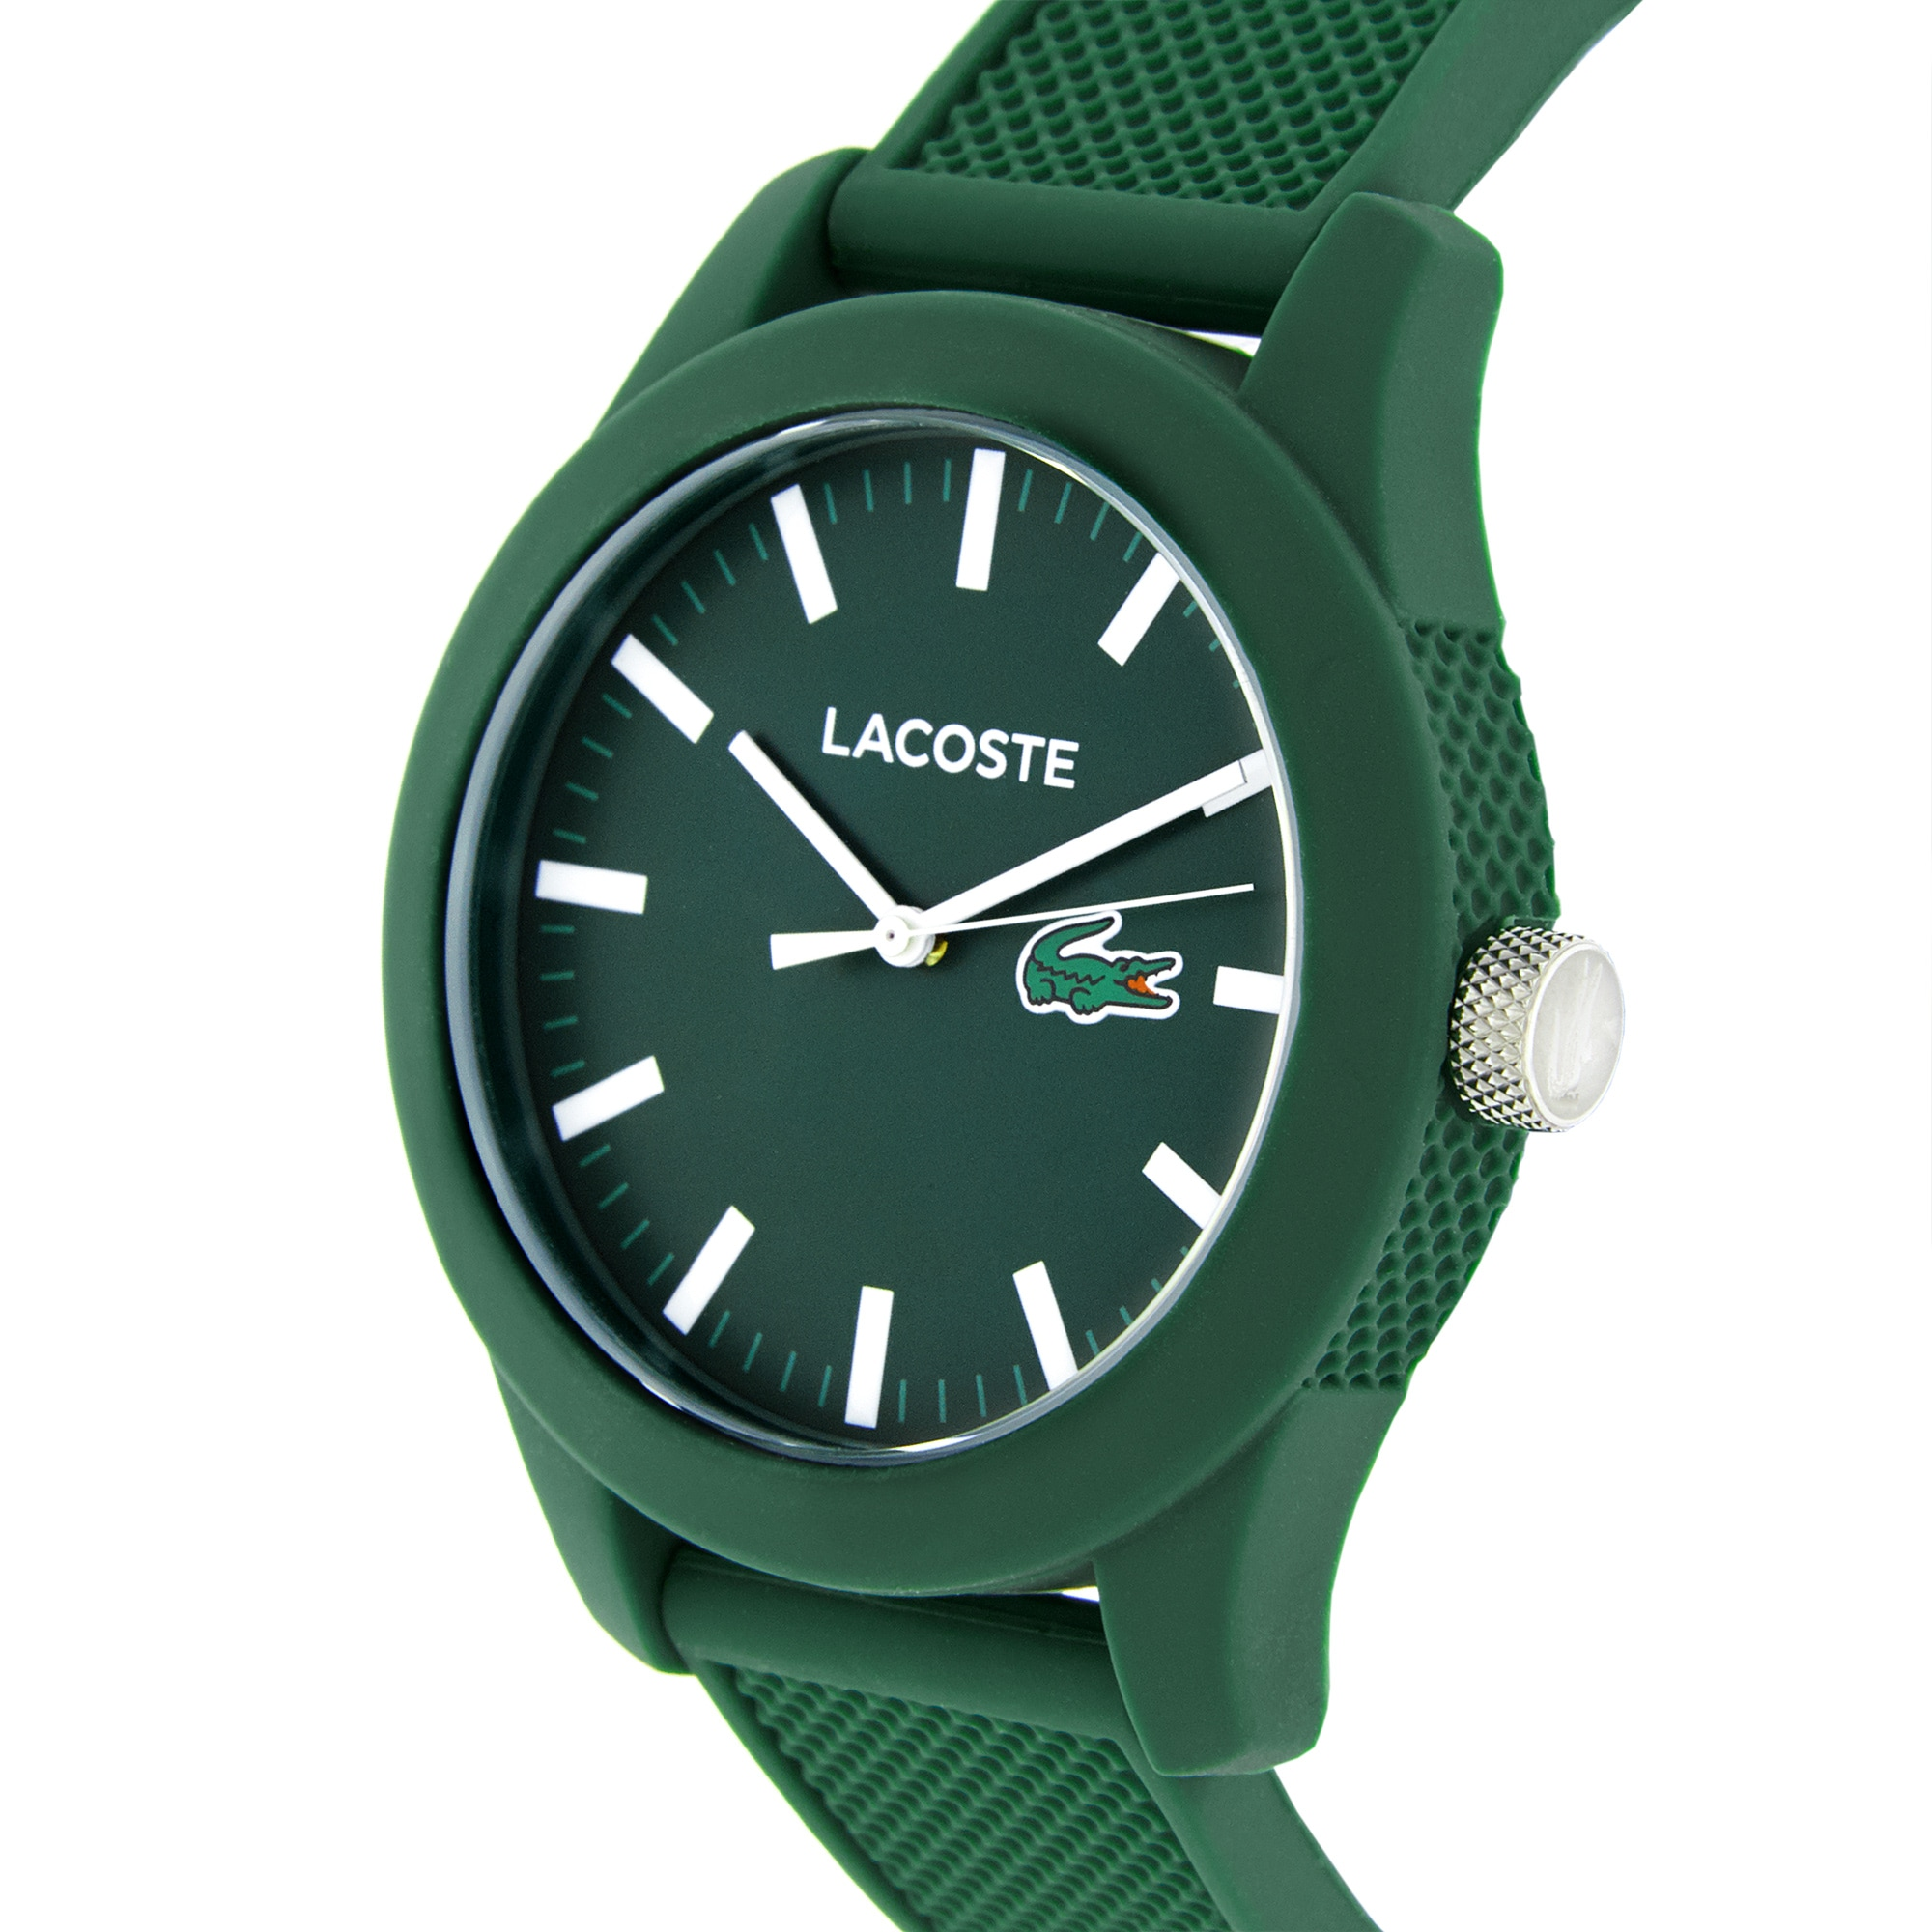 Lacoste L.12.12 Watch - Green Edition